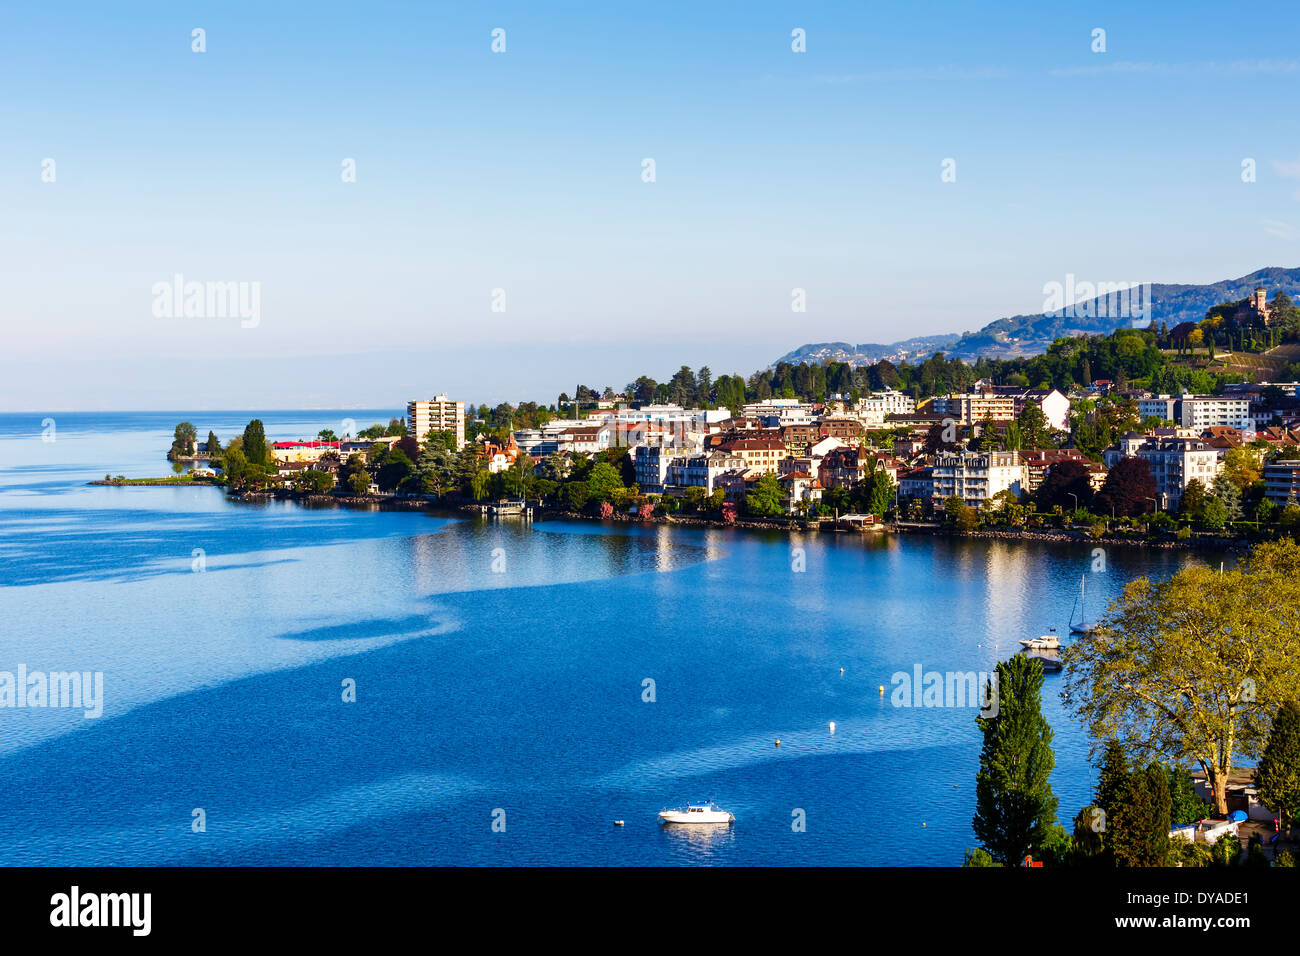 Aerial view of buildings from Montreux - Stock Image